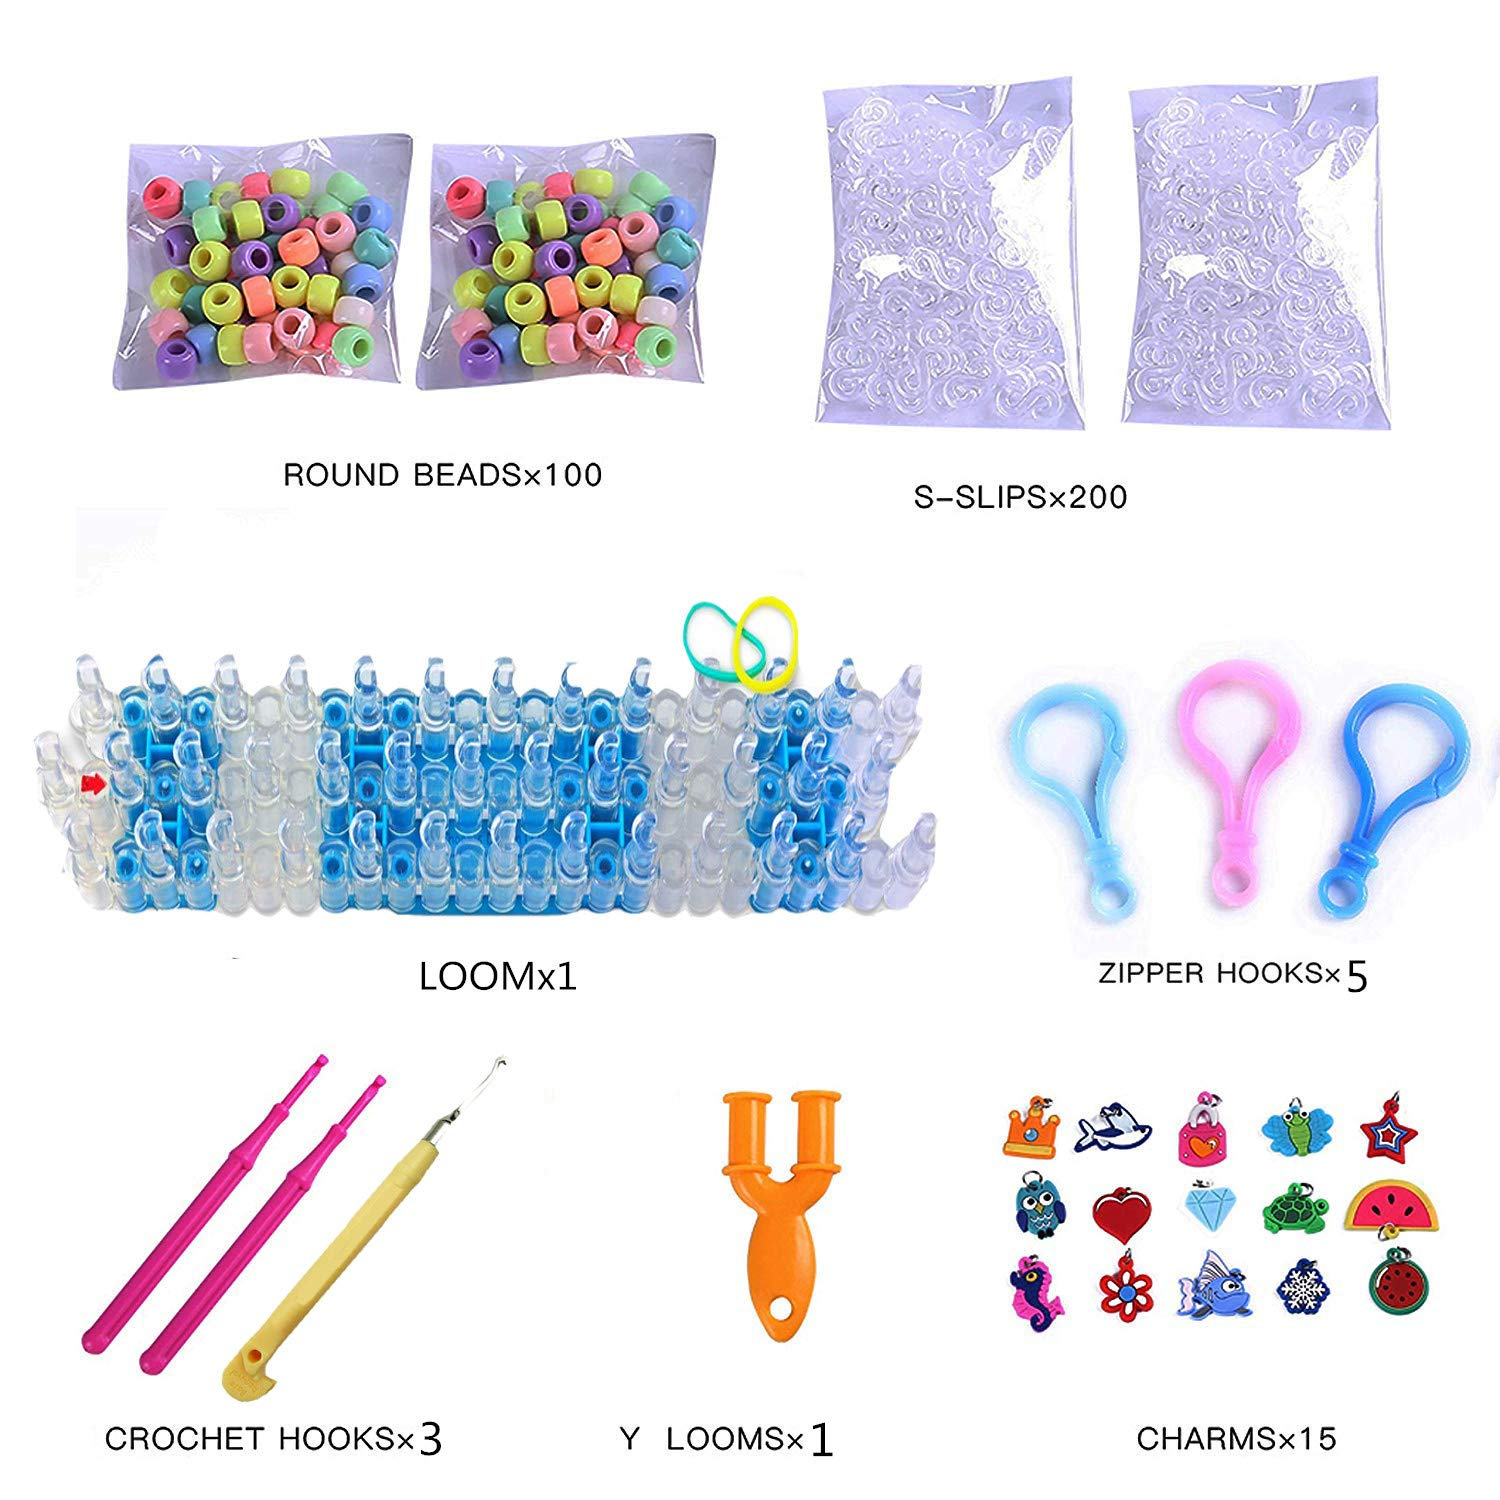 Rainbow Color Loom RubberBands Kit Colorful Bands Refill Bracelet Making Set Including6800 Pcs Rubber Loom Bands 200 Pcs Slips 100 Beads 15 Charms 8 Tools More for DIYWeaving Crafting by Bomach (Image #2)